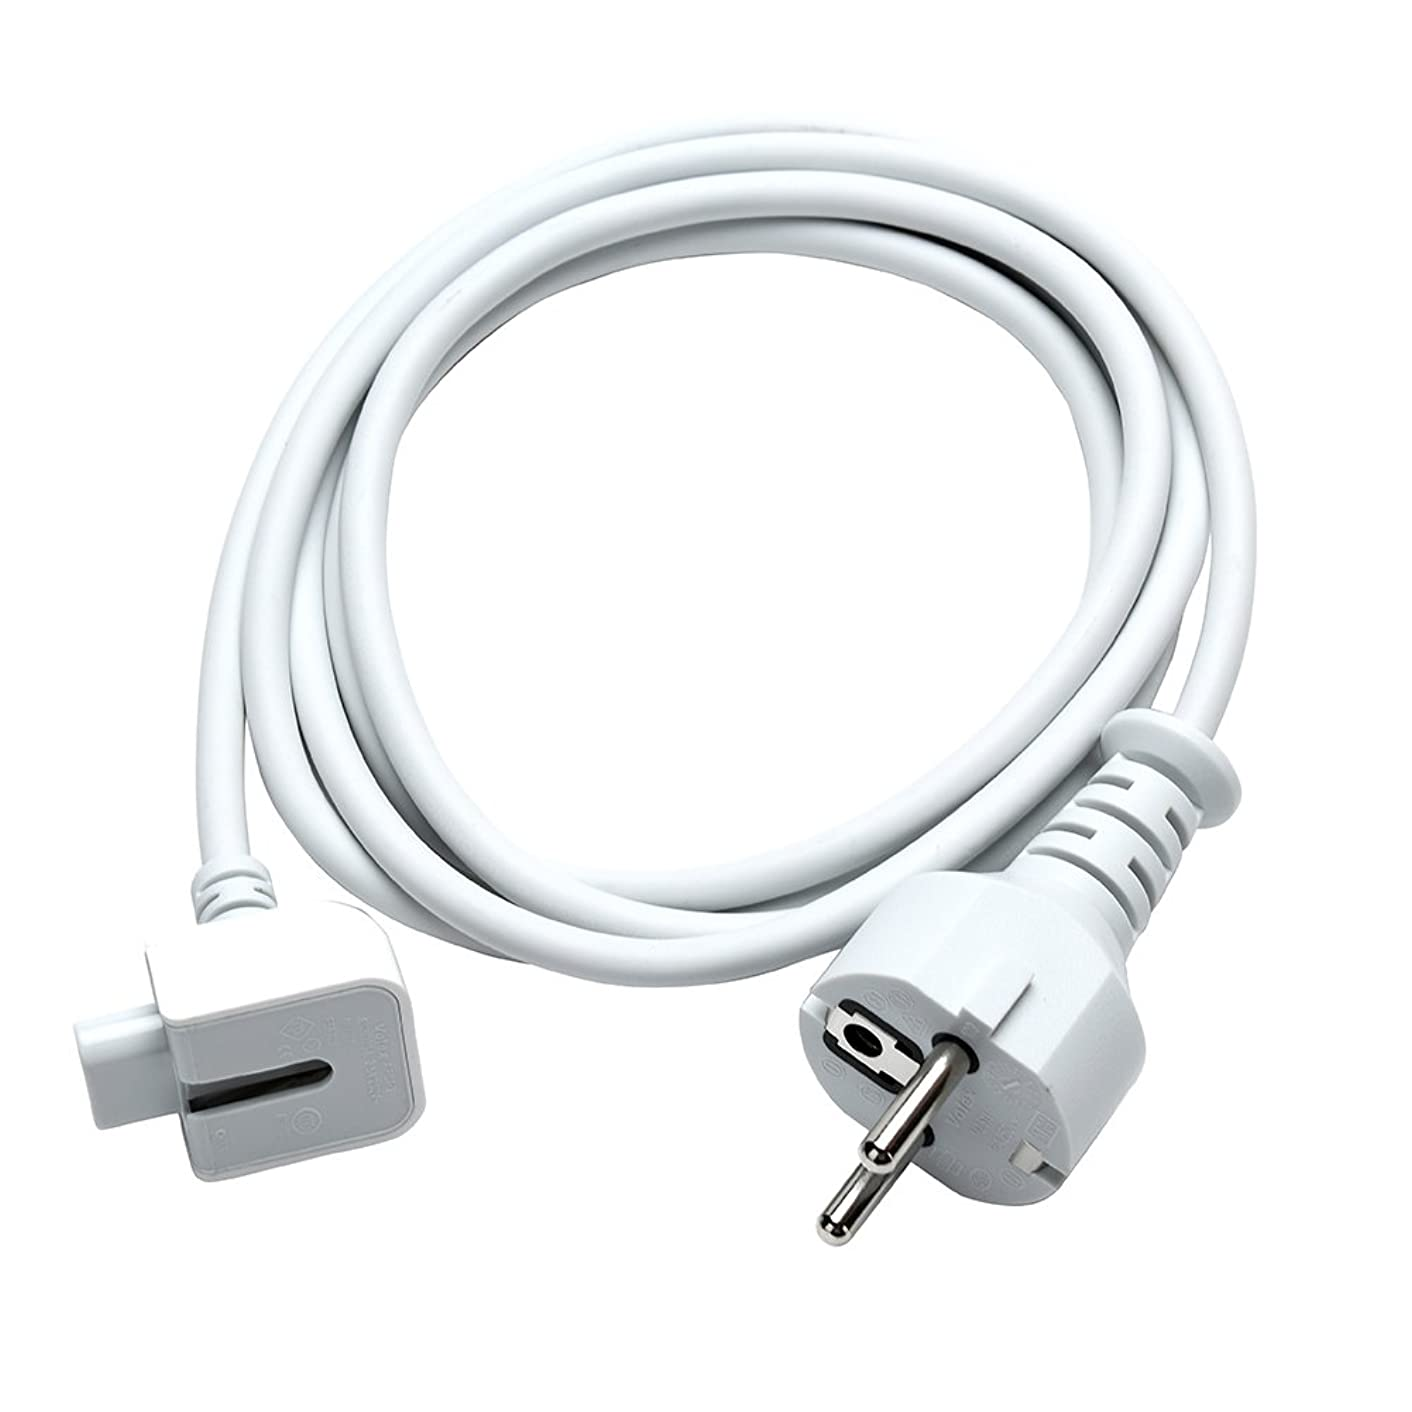 WESAPPINC Replacement Extension Power Cord European Standard Plug 6 Feet Cable for Apple MacBook 45W 60W 85W Magsafe or Magsafe 2 Power Adapter